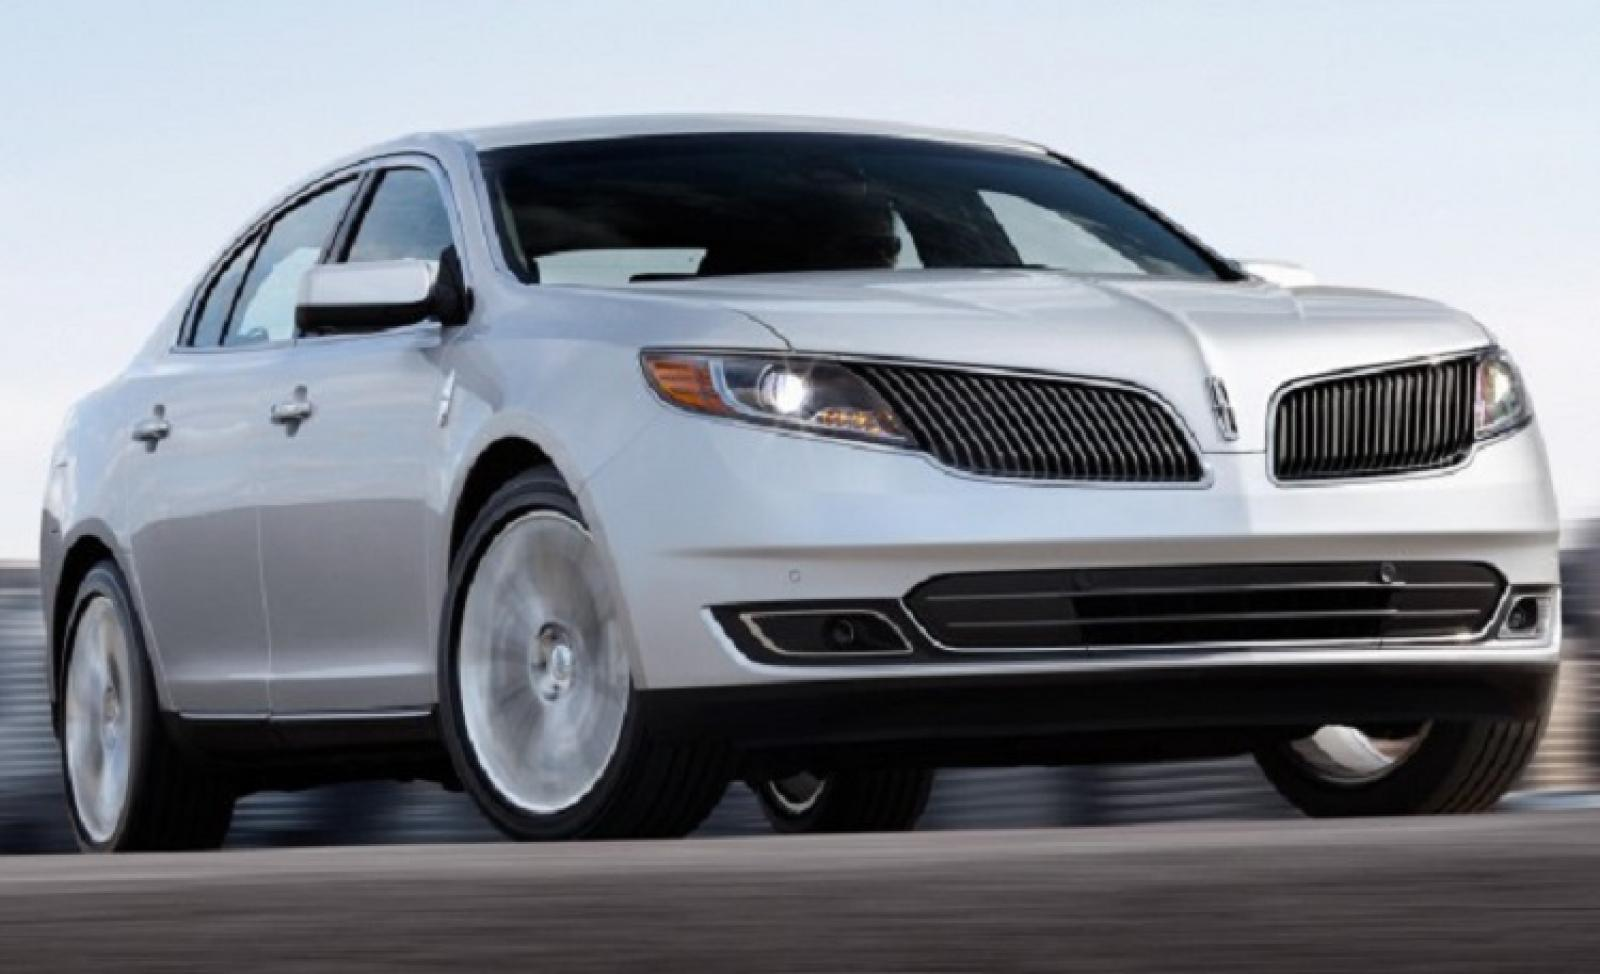 2015 LINCOLN MKZ - 1600px Image #9